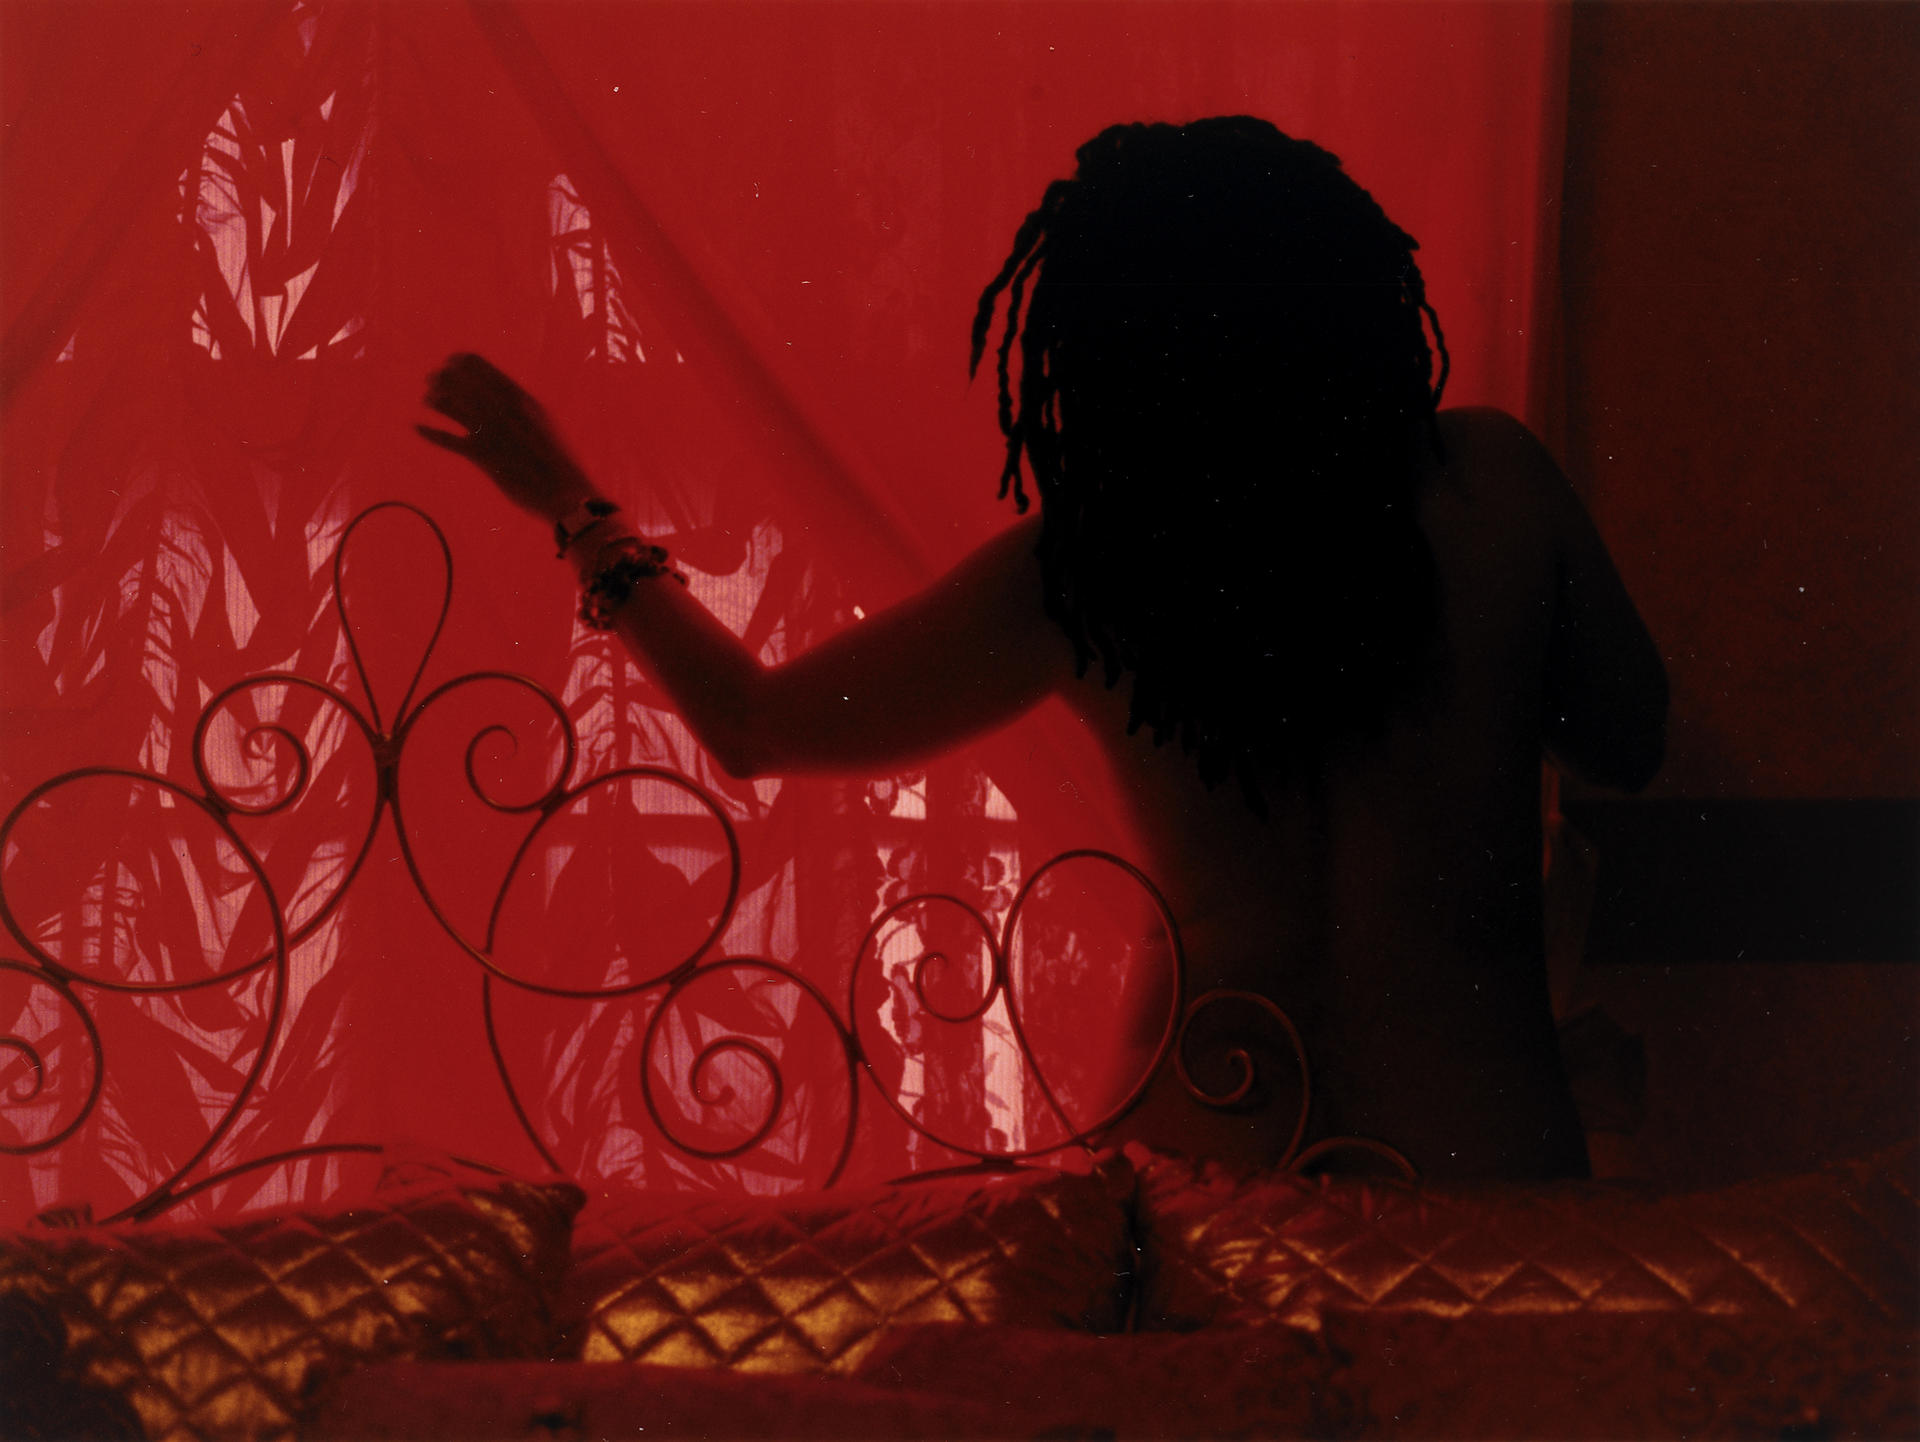 Photograph of a person with outstretched arm sillhouetted against a red window